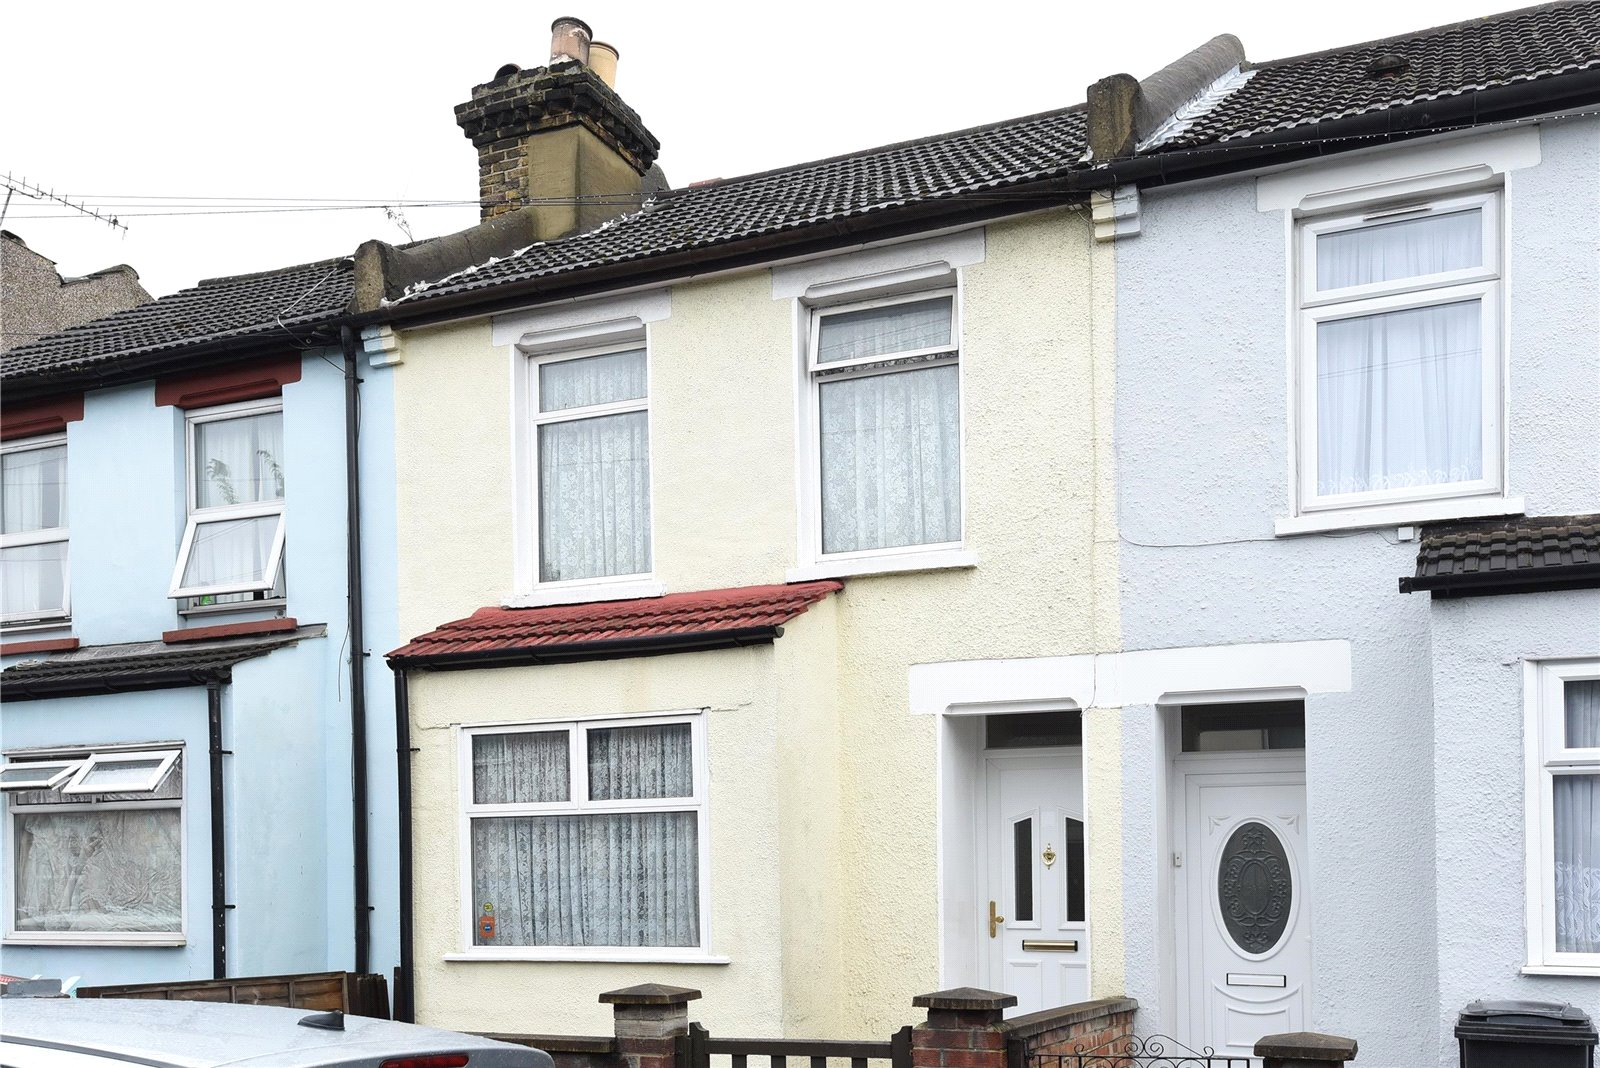 3 bed house for sale in Thornton Heath 0